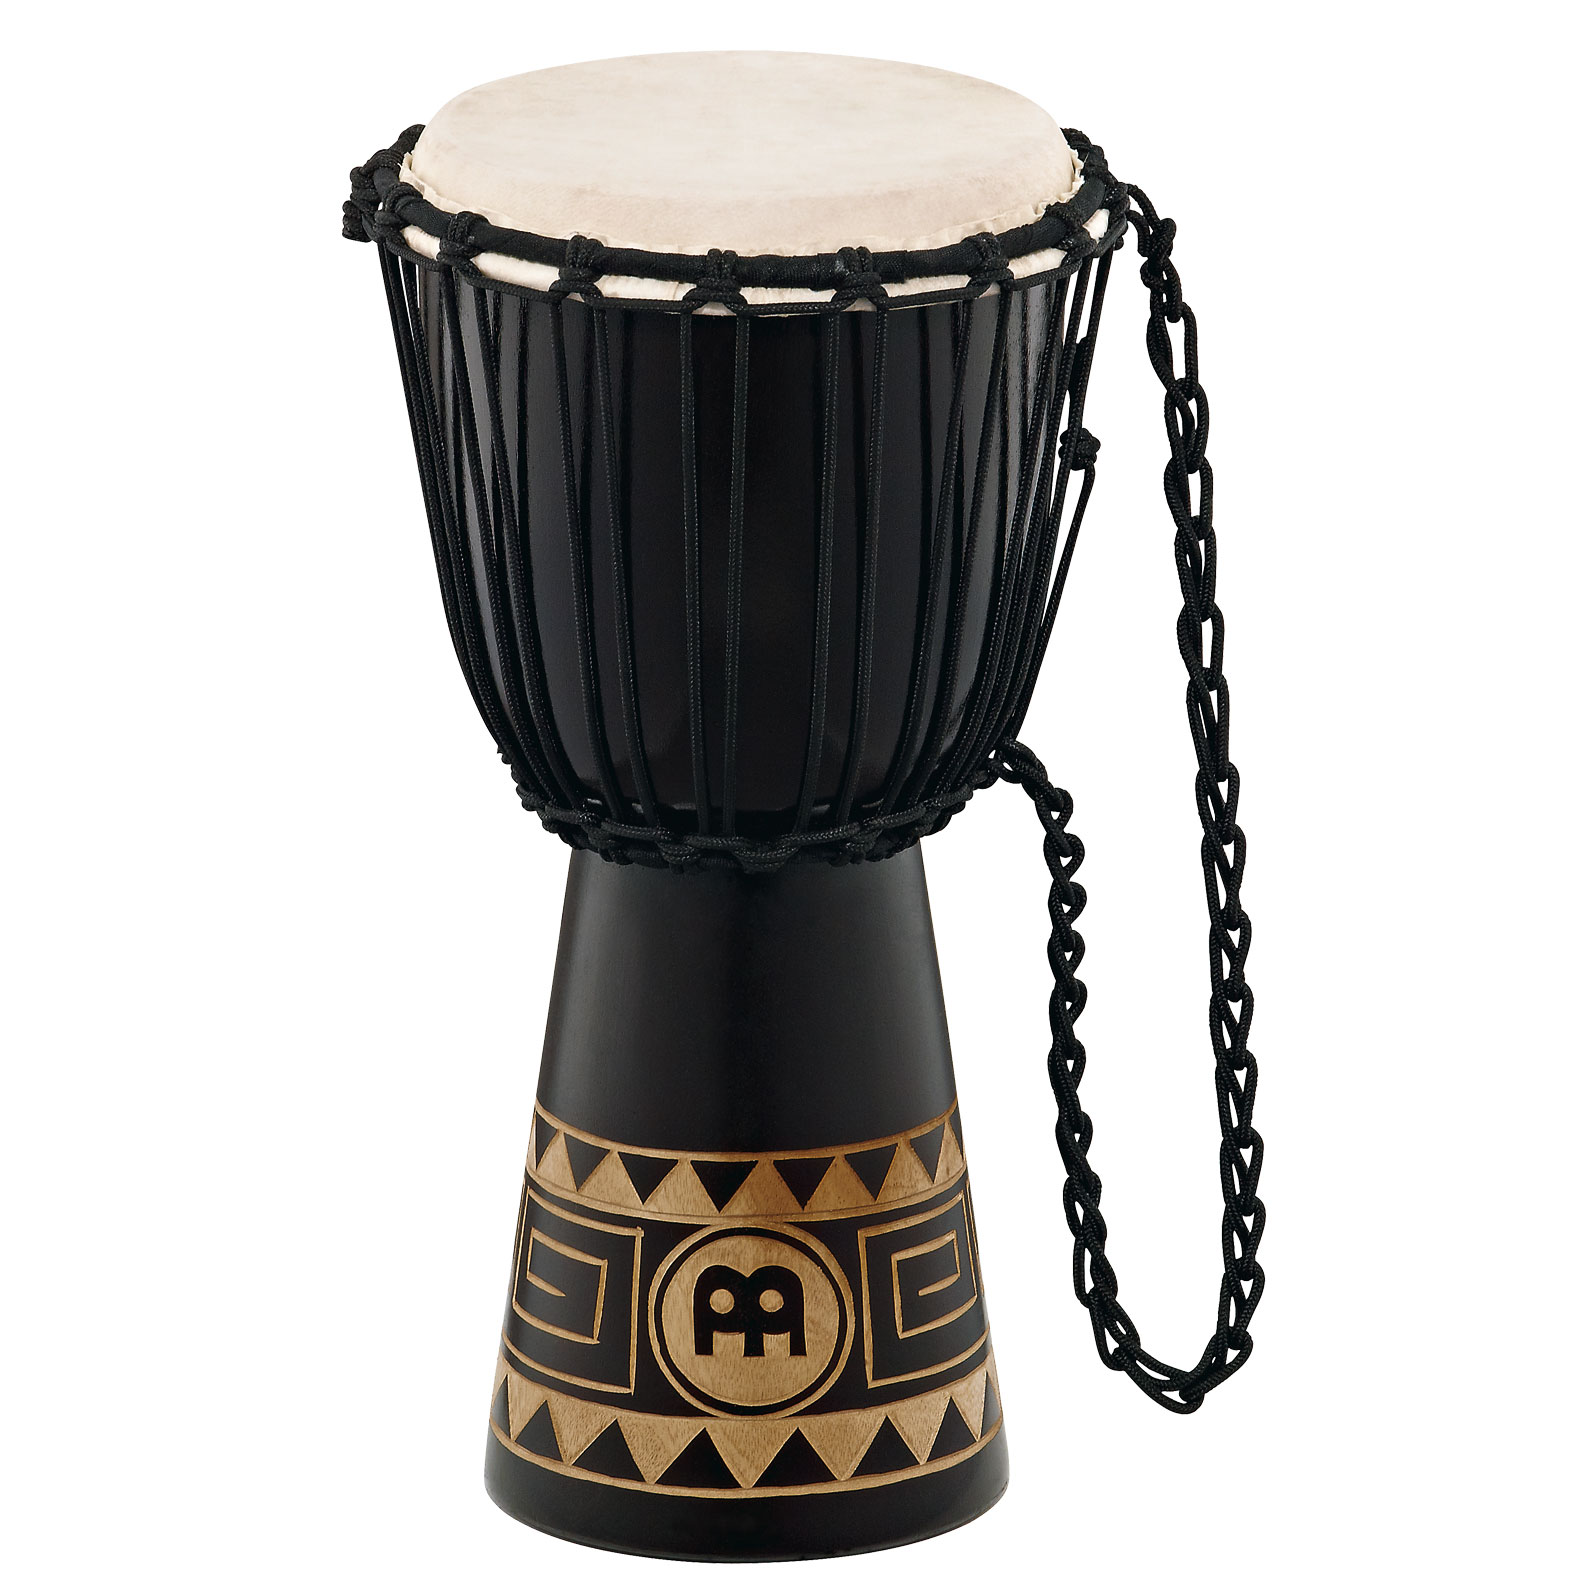 "Meinl 8"" Headliner Series Rope-Tuned Djembe with Congo Design"